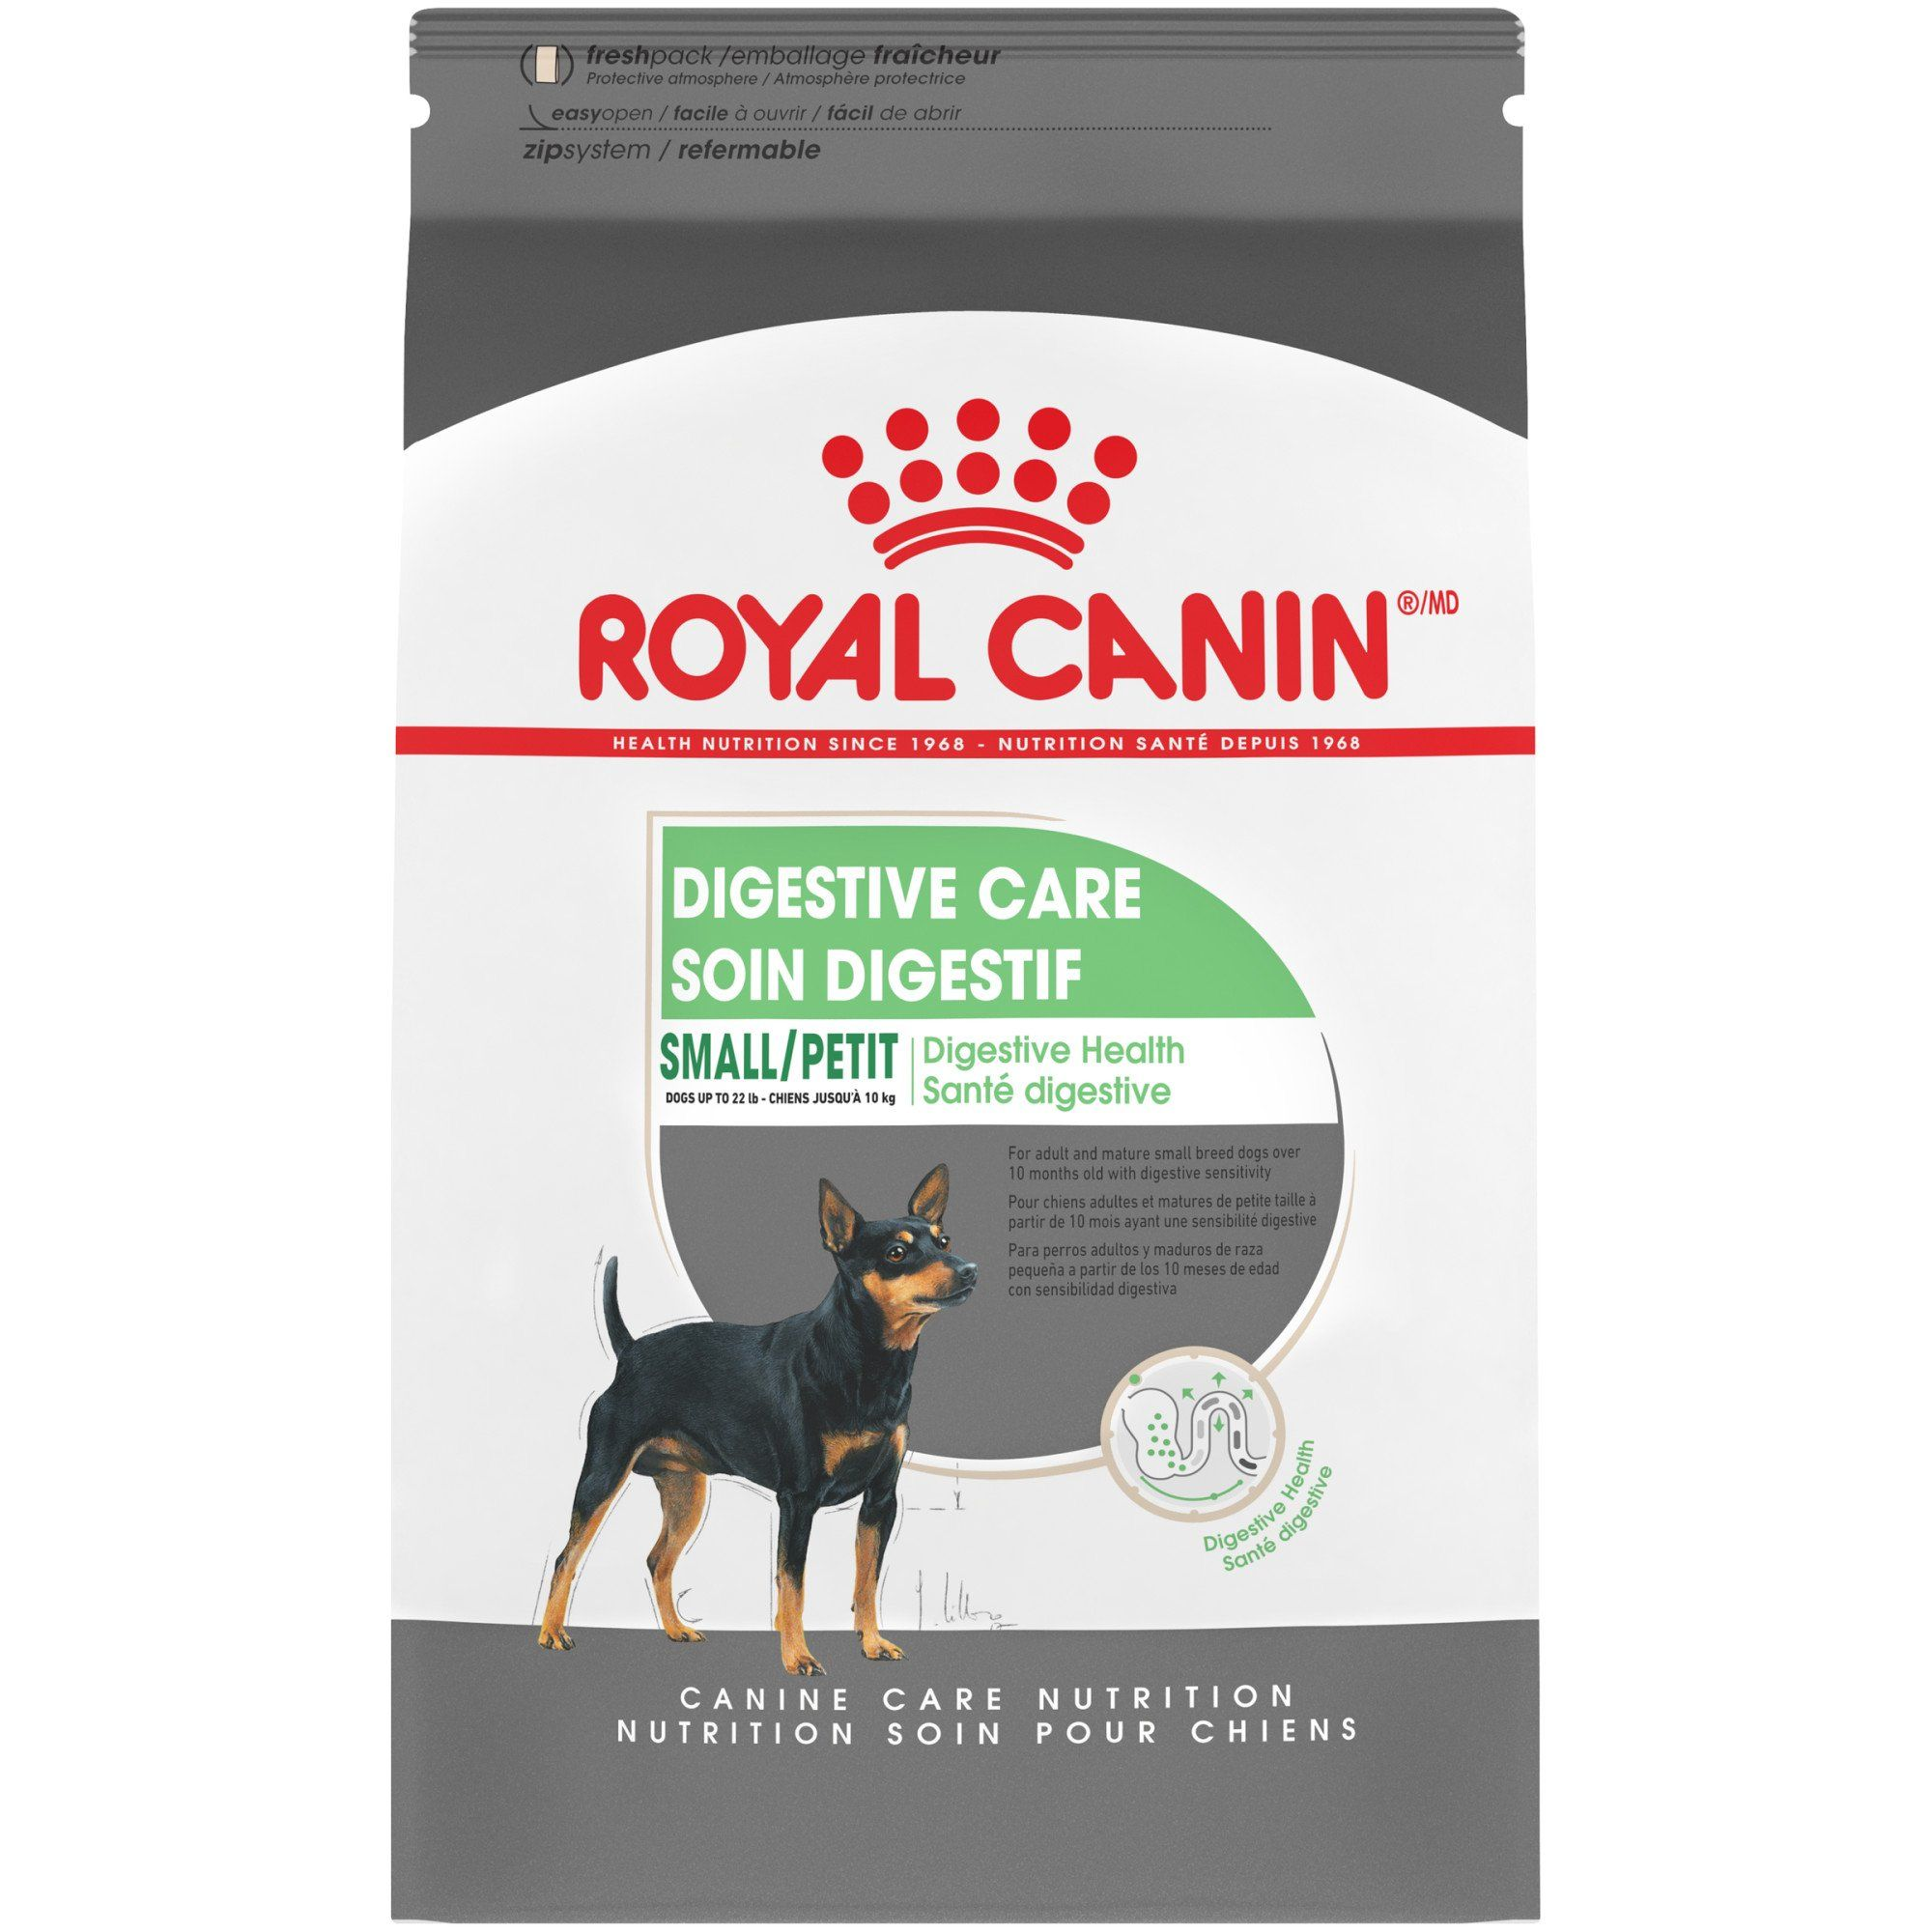 Royal Canin Size Health Nutrition Mini Special Dry Dog Food 17 Lbs Canine Care Dry Dog Food Dog Food Recipes